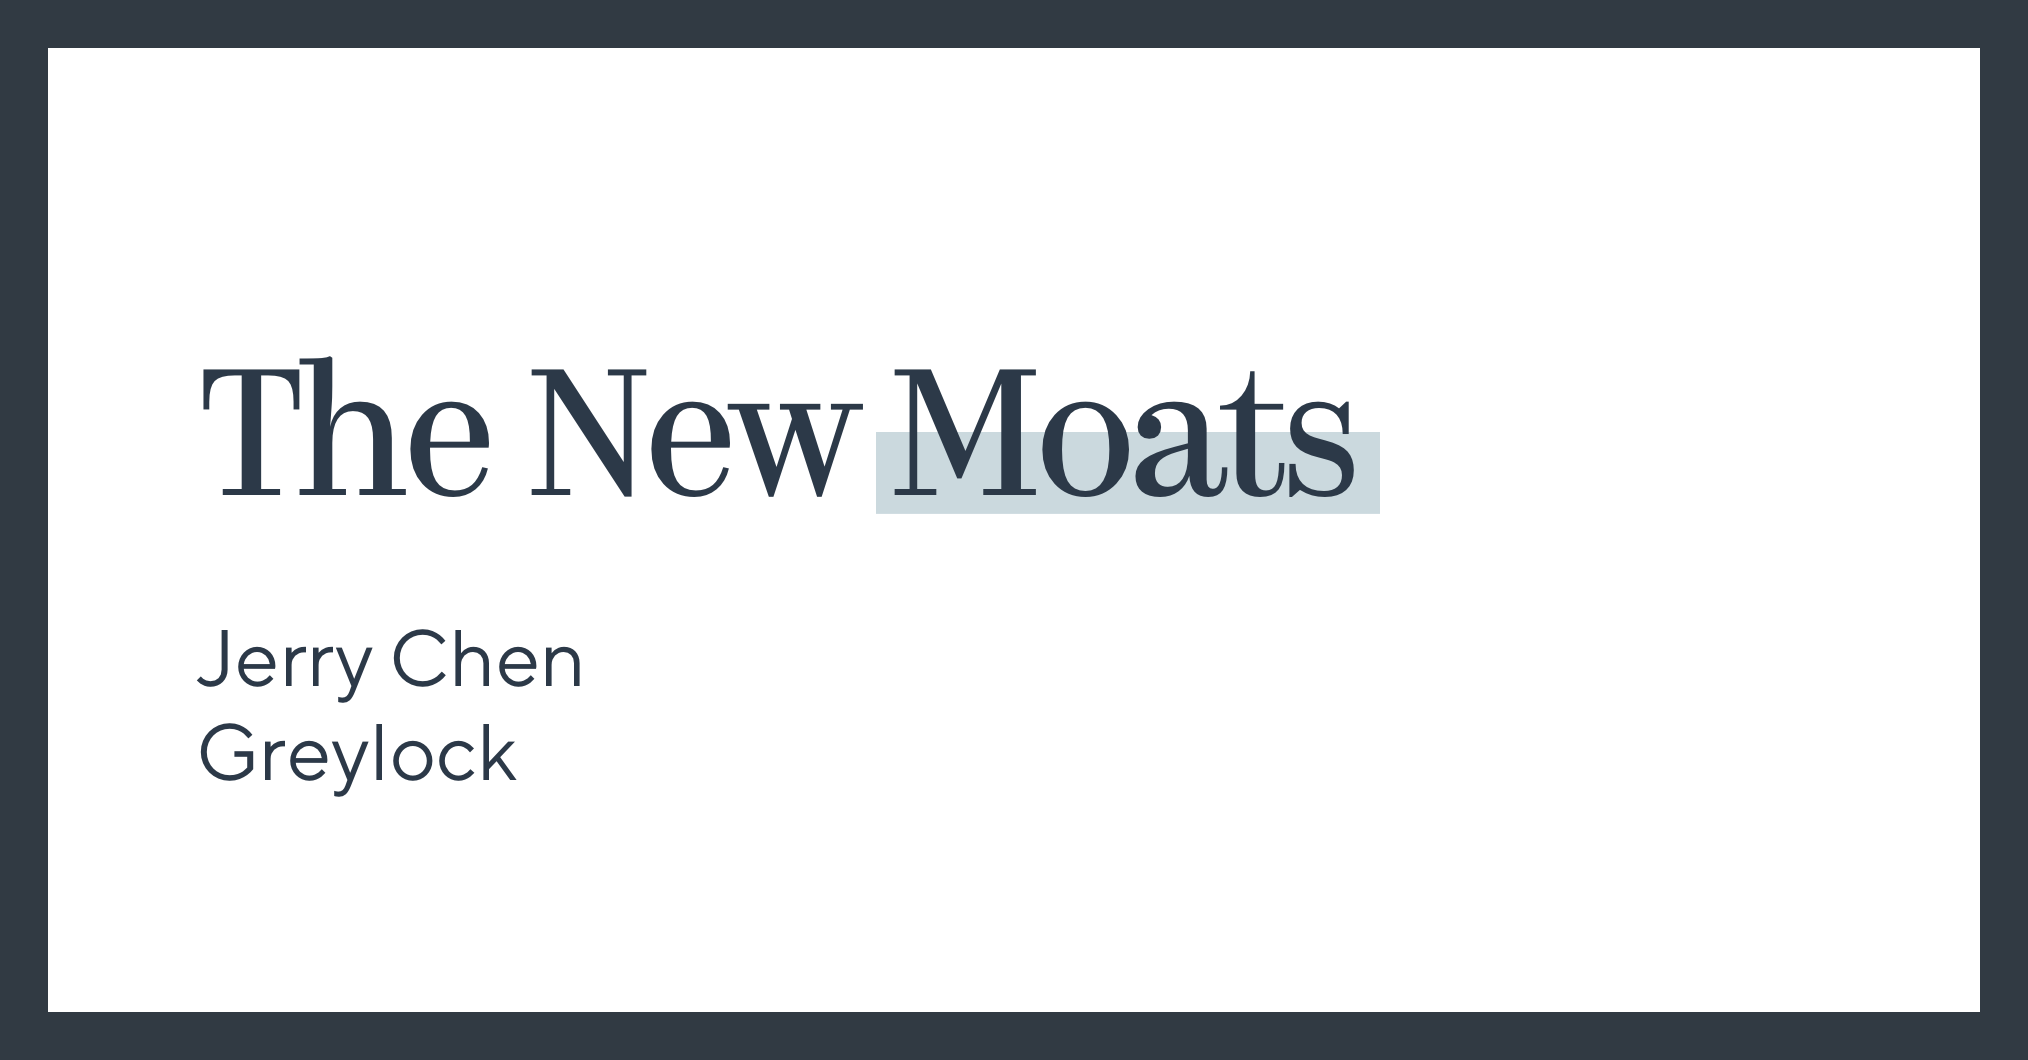 The New Moats